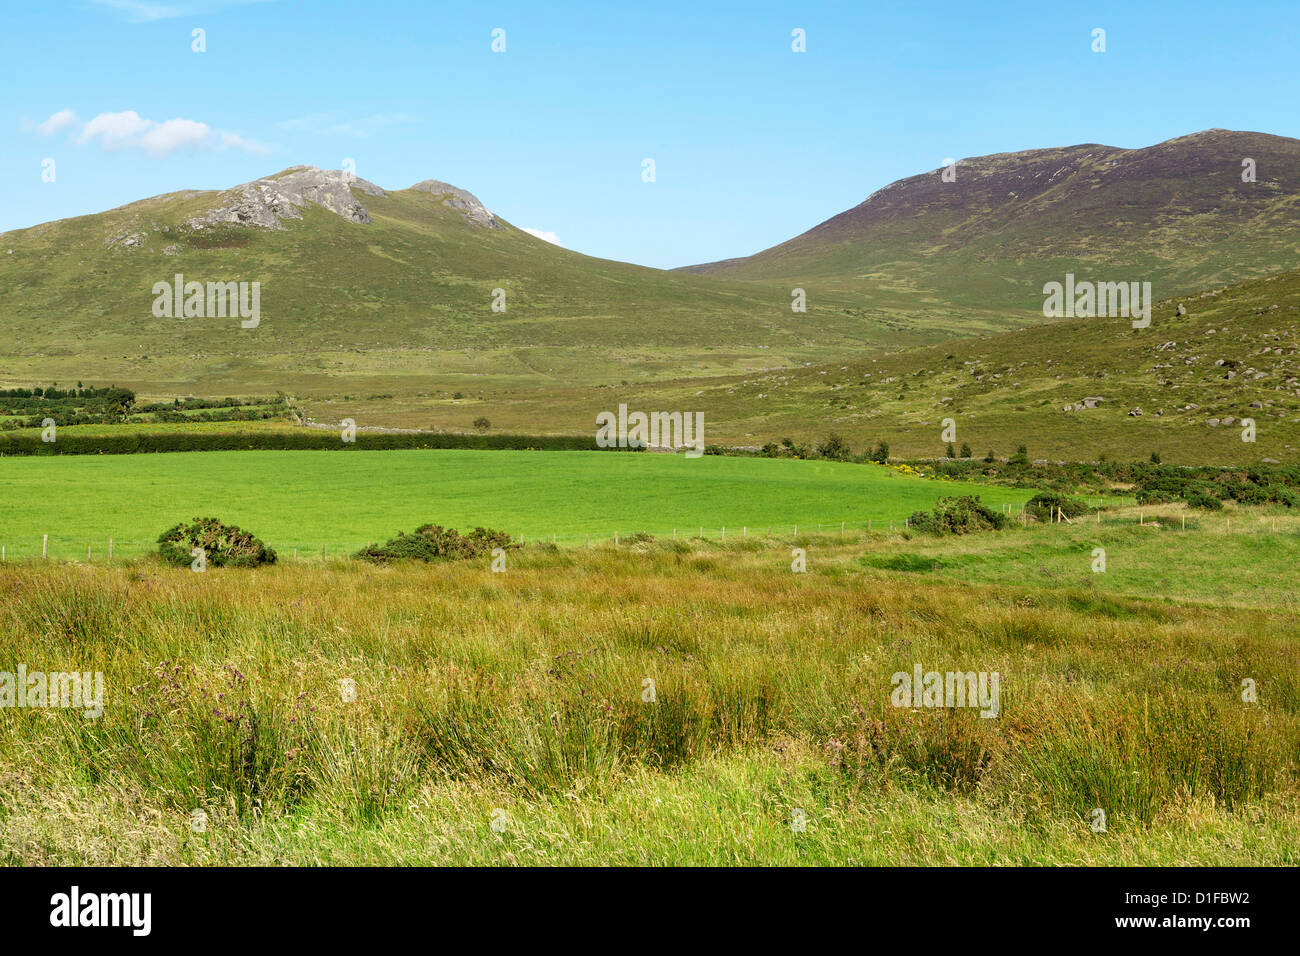 Eagle Mountain and Shanlieve, Mourne Mountains, County Down, Ulster, Northern Ireland, United Kingdom, Europe - Stock Image